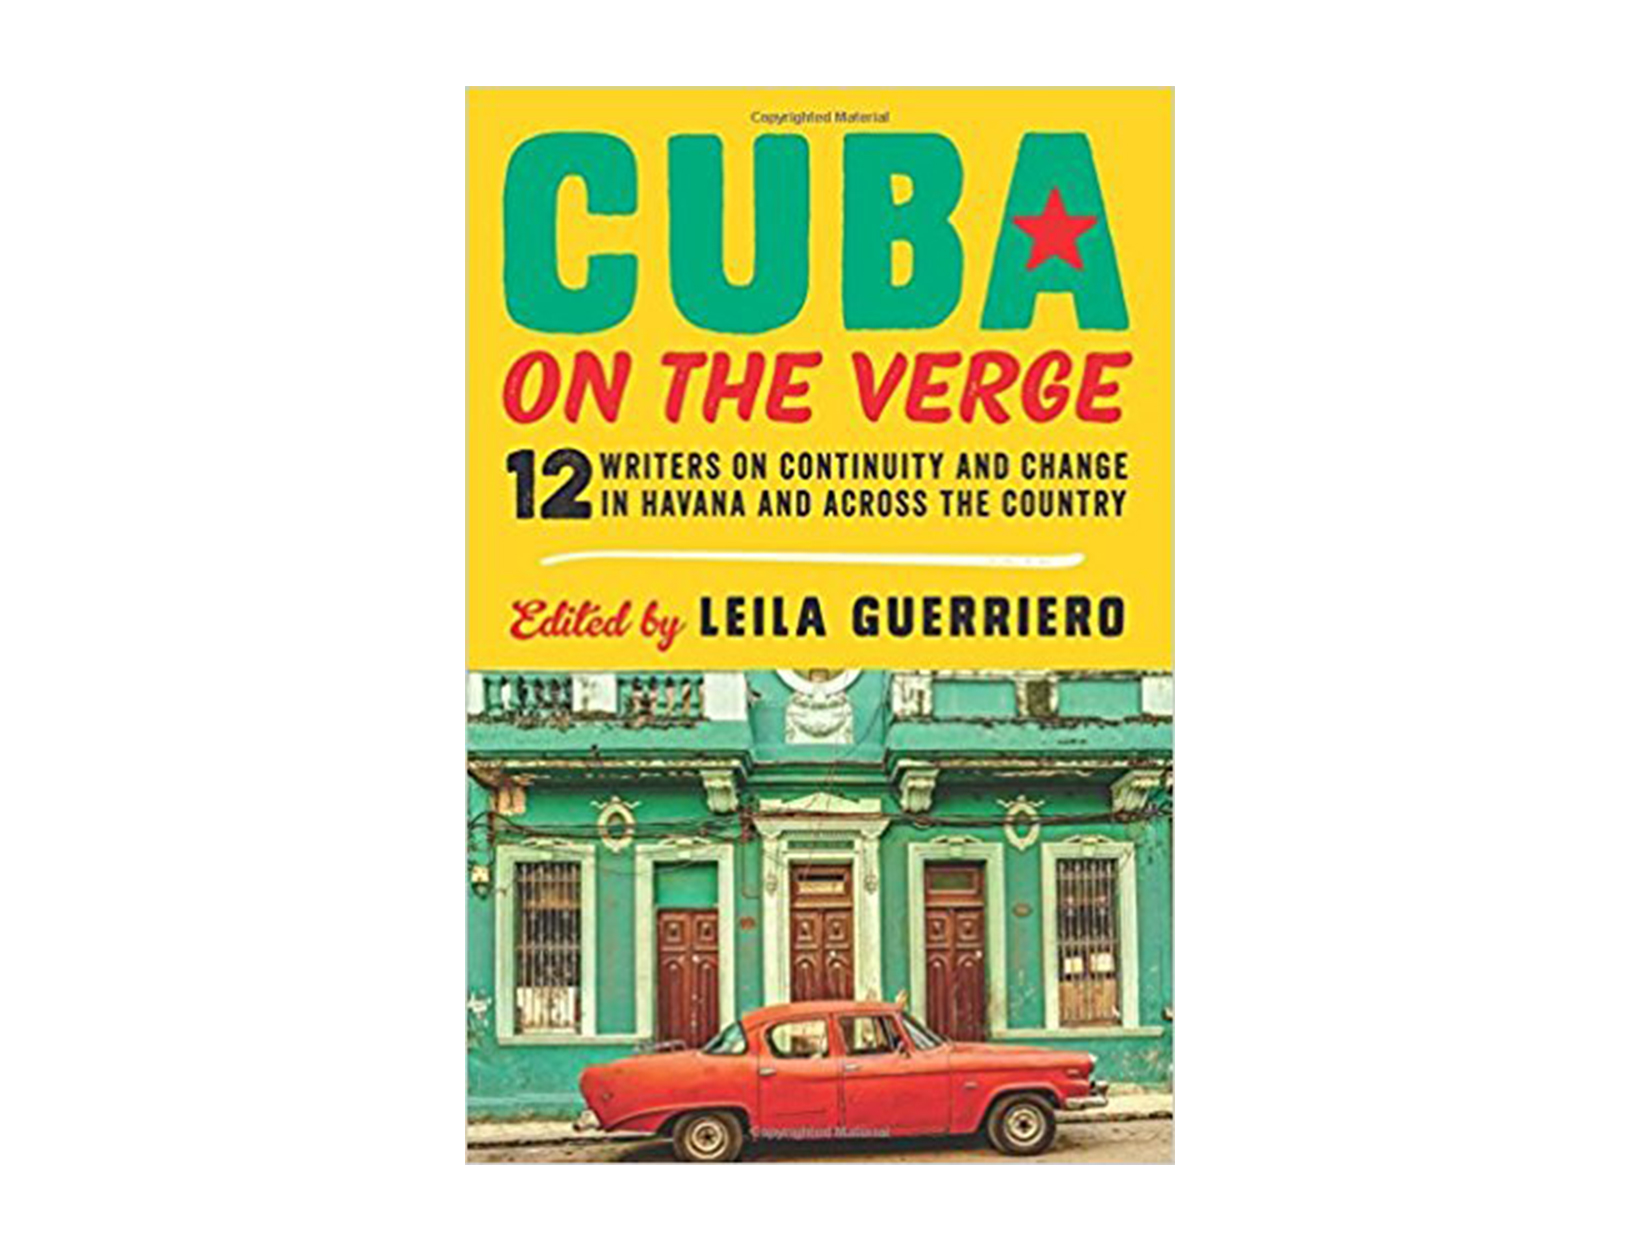 Cuba on the Verge: 12 Writers on Continuity and Change in Havana and Across the Country edited by Leila Guerriero